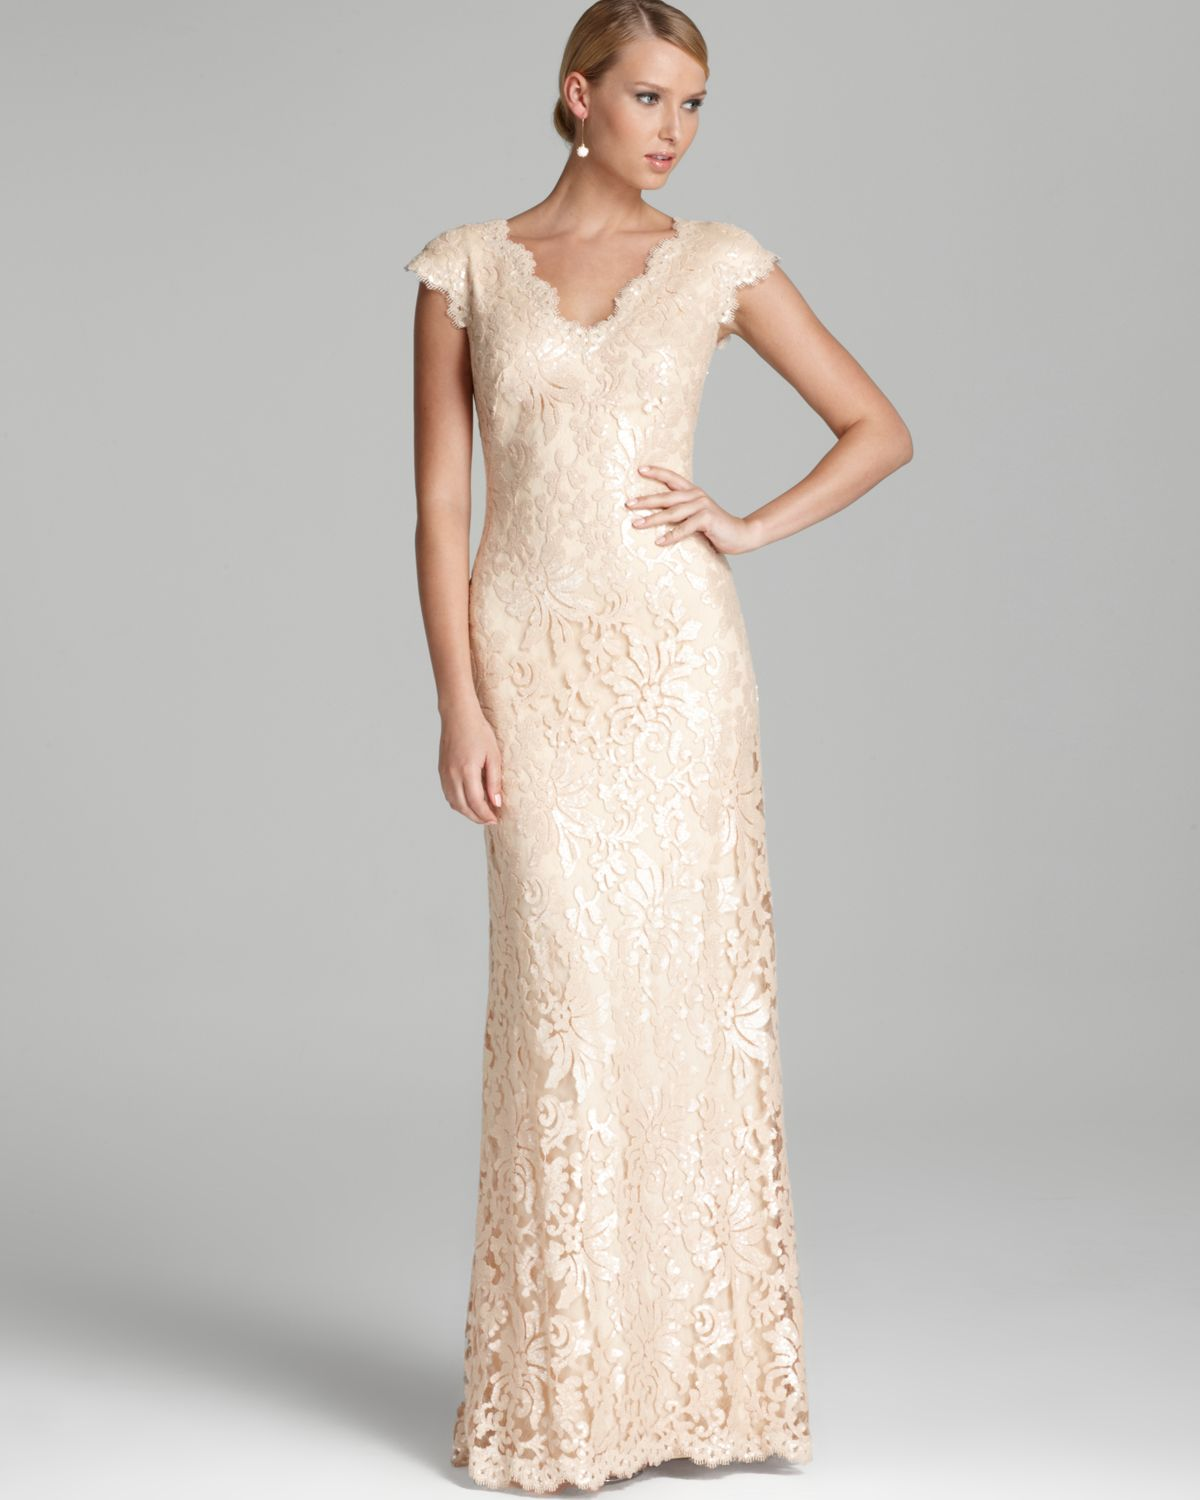 Lyst - Tadashi Shoji Lace Gown Cap Sleeve V Neck Sequin in White